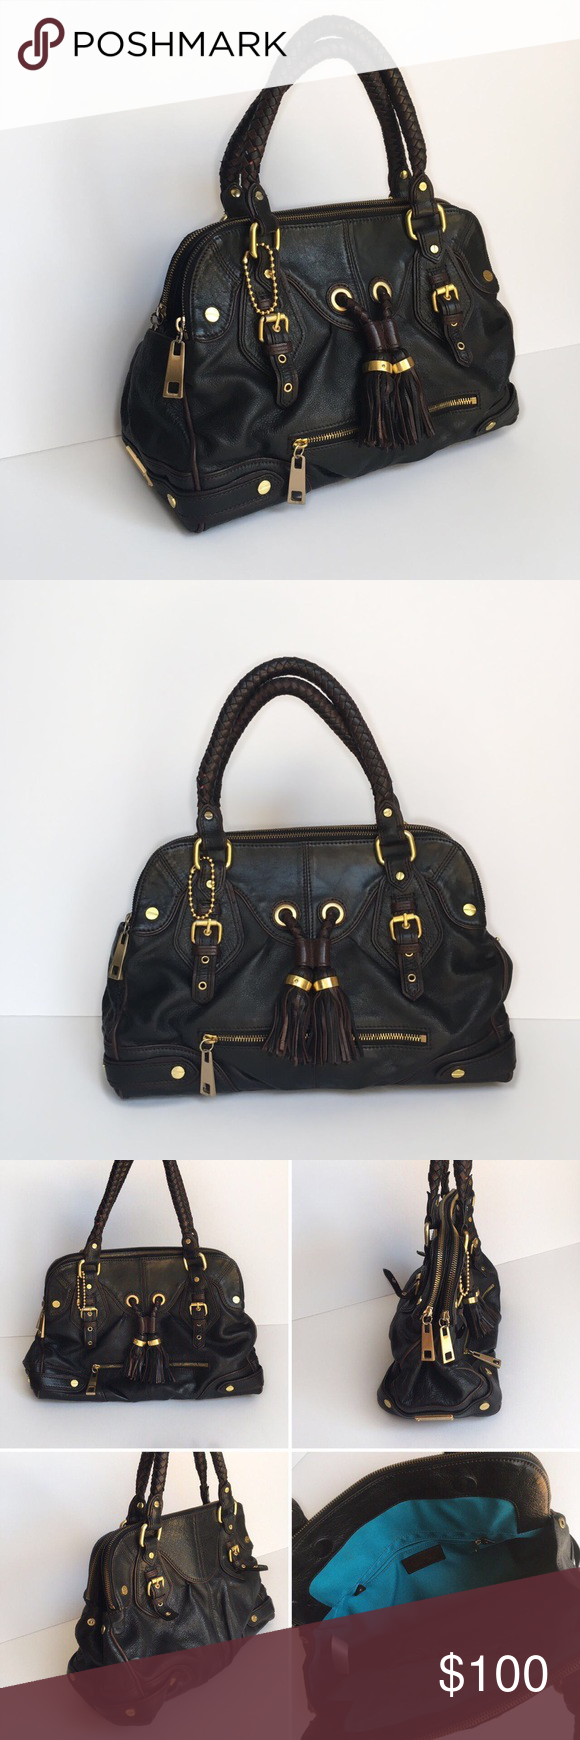 Steven by Steve Madden Satchel Black leather handbag with brown trim and gold hardware. 2 zipper pocket, 2 open pockets, 1 small zipper pocket.  •Dimension: 10.5 x 13.5 x 5.5 in  •Handle drop: 15.5 in *Please note defect on 4th collage (tiny slit, wear and tear marks, scratches on hardwares) Steven by Steve Madden Bags Satchels